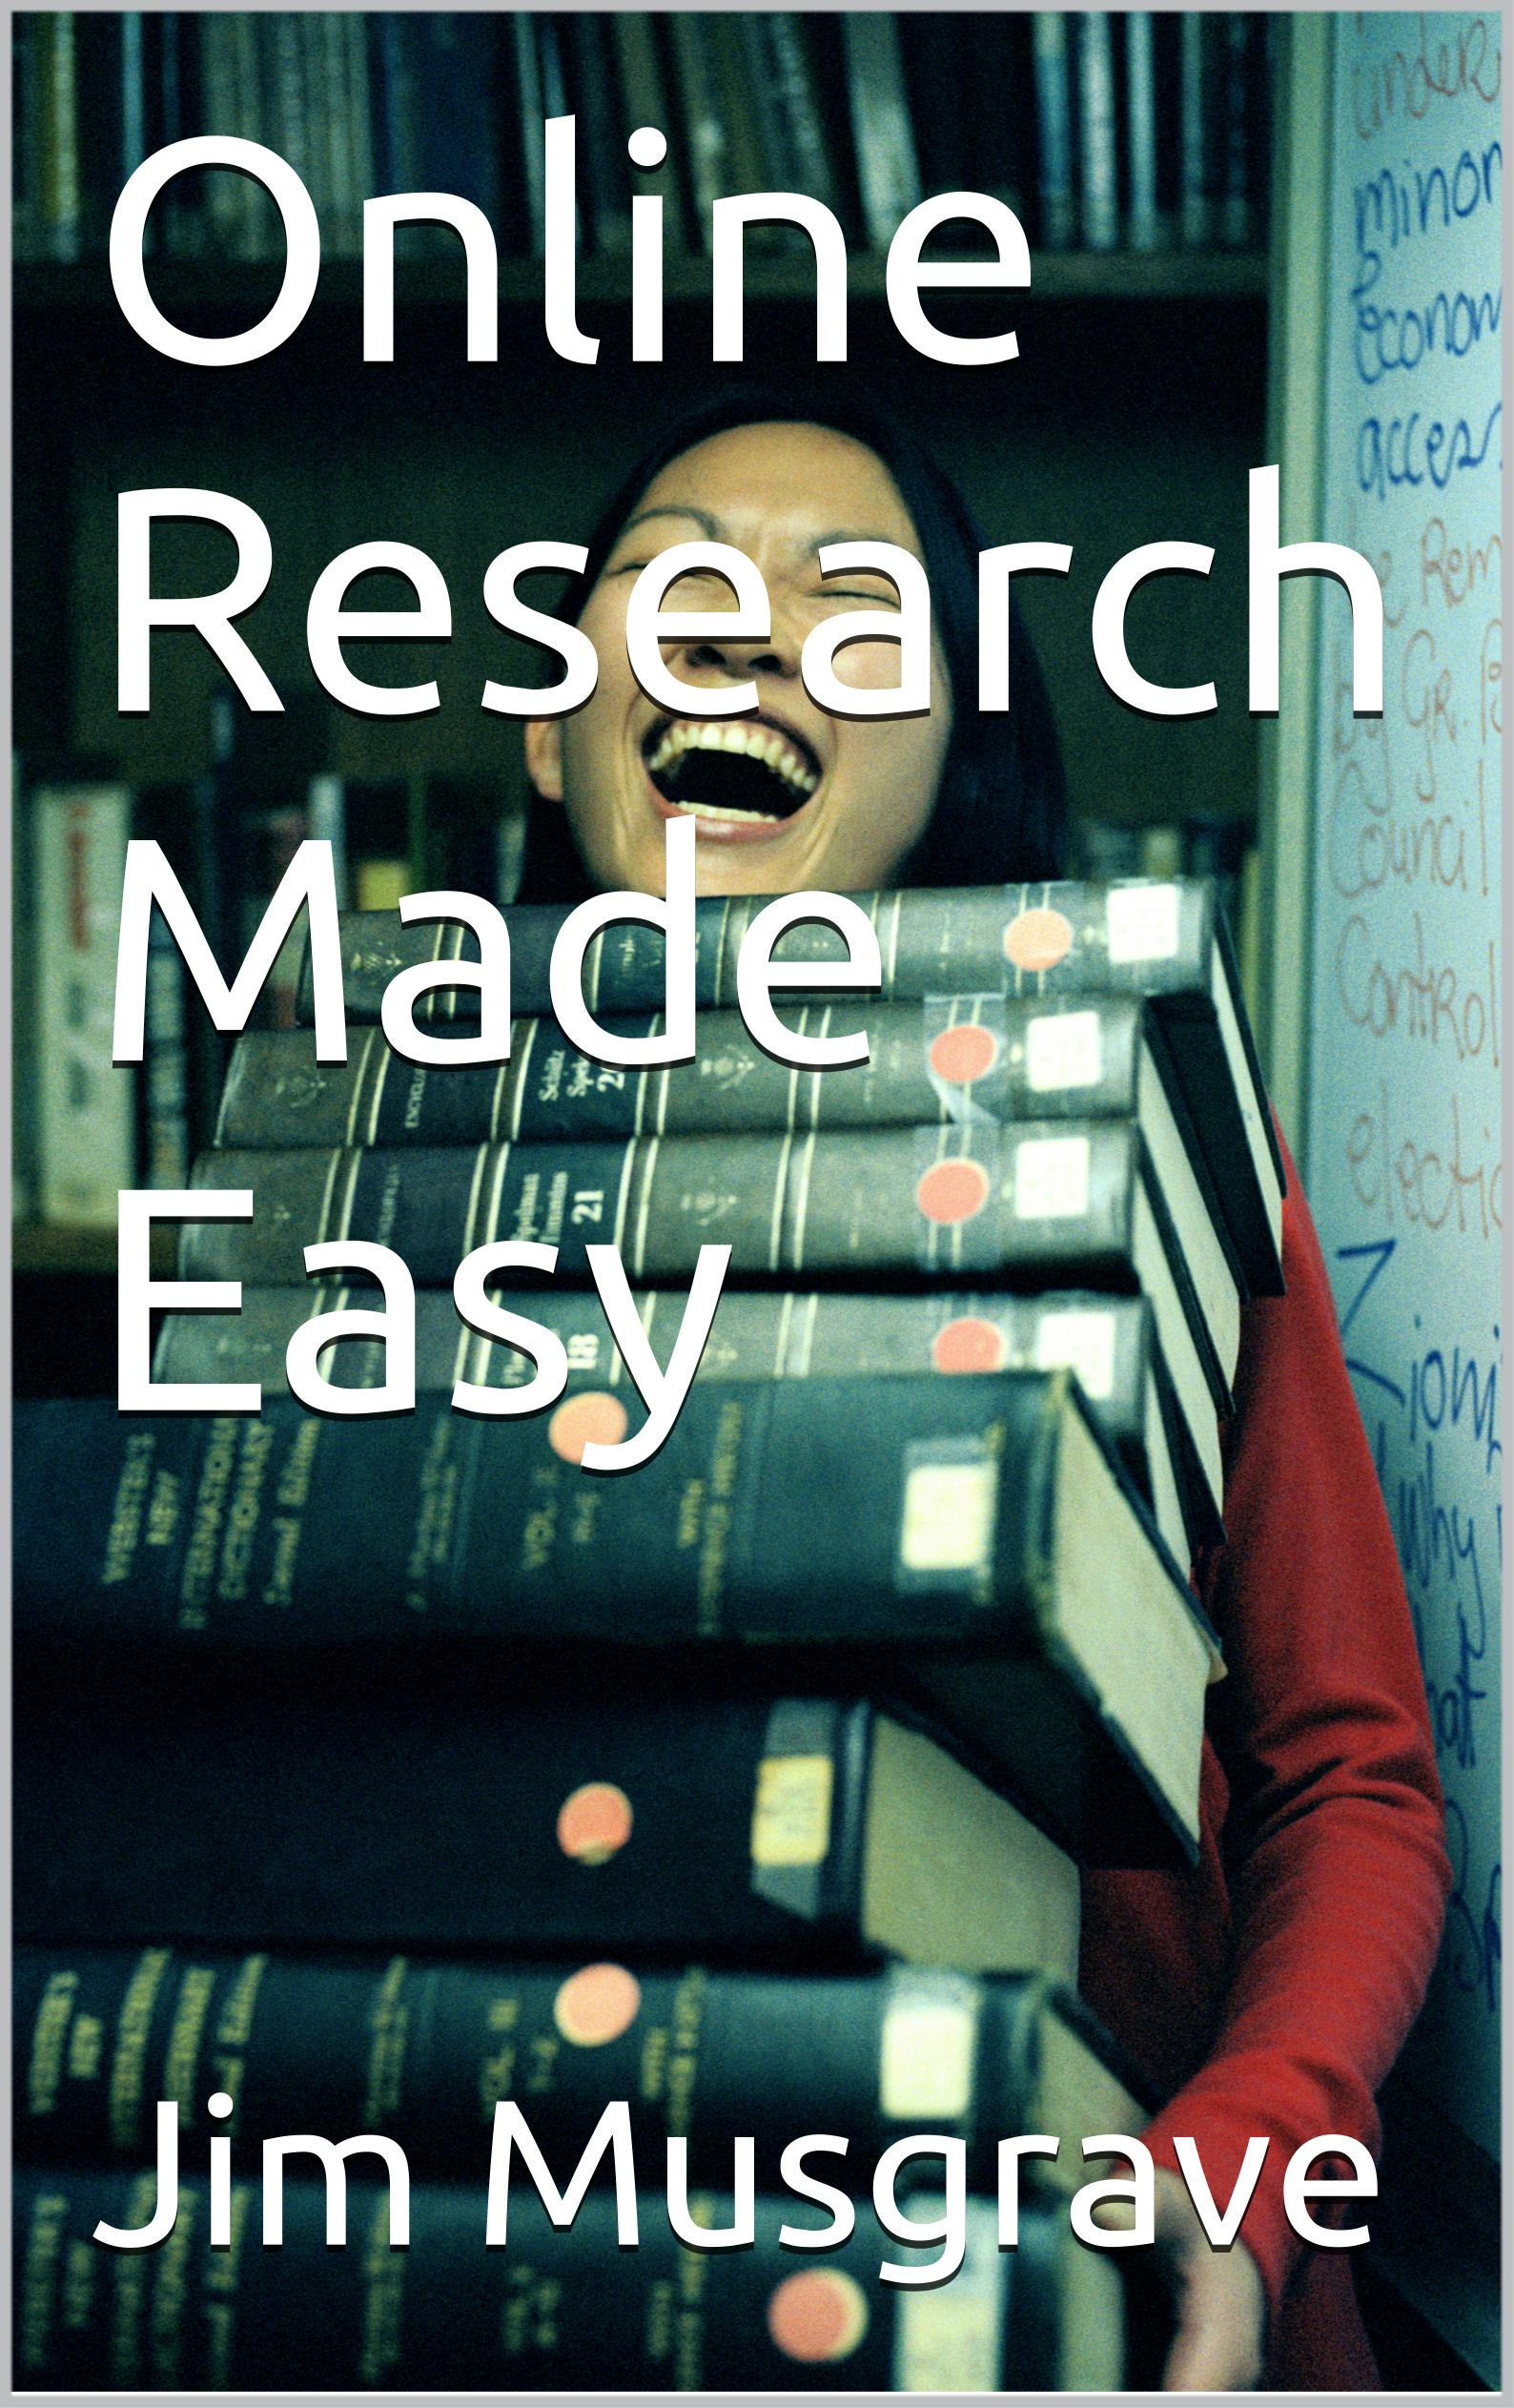 Online Research cover